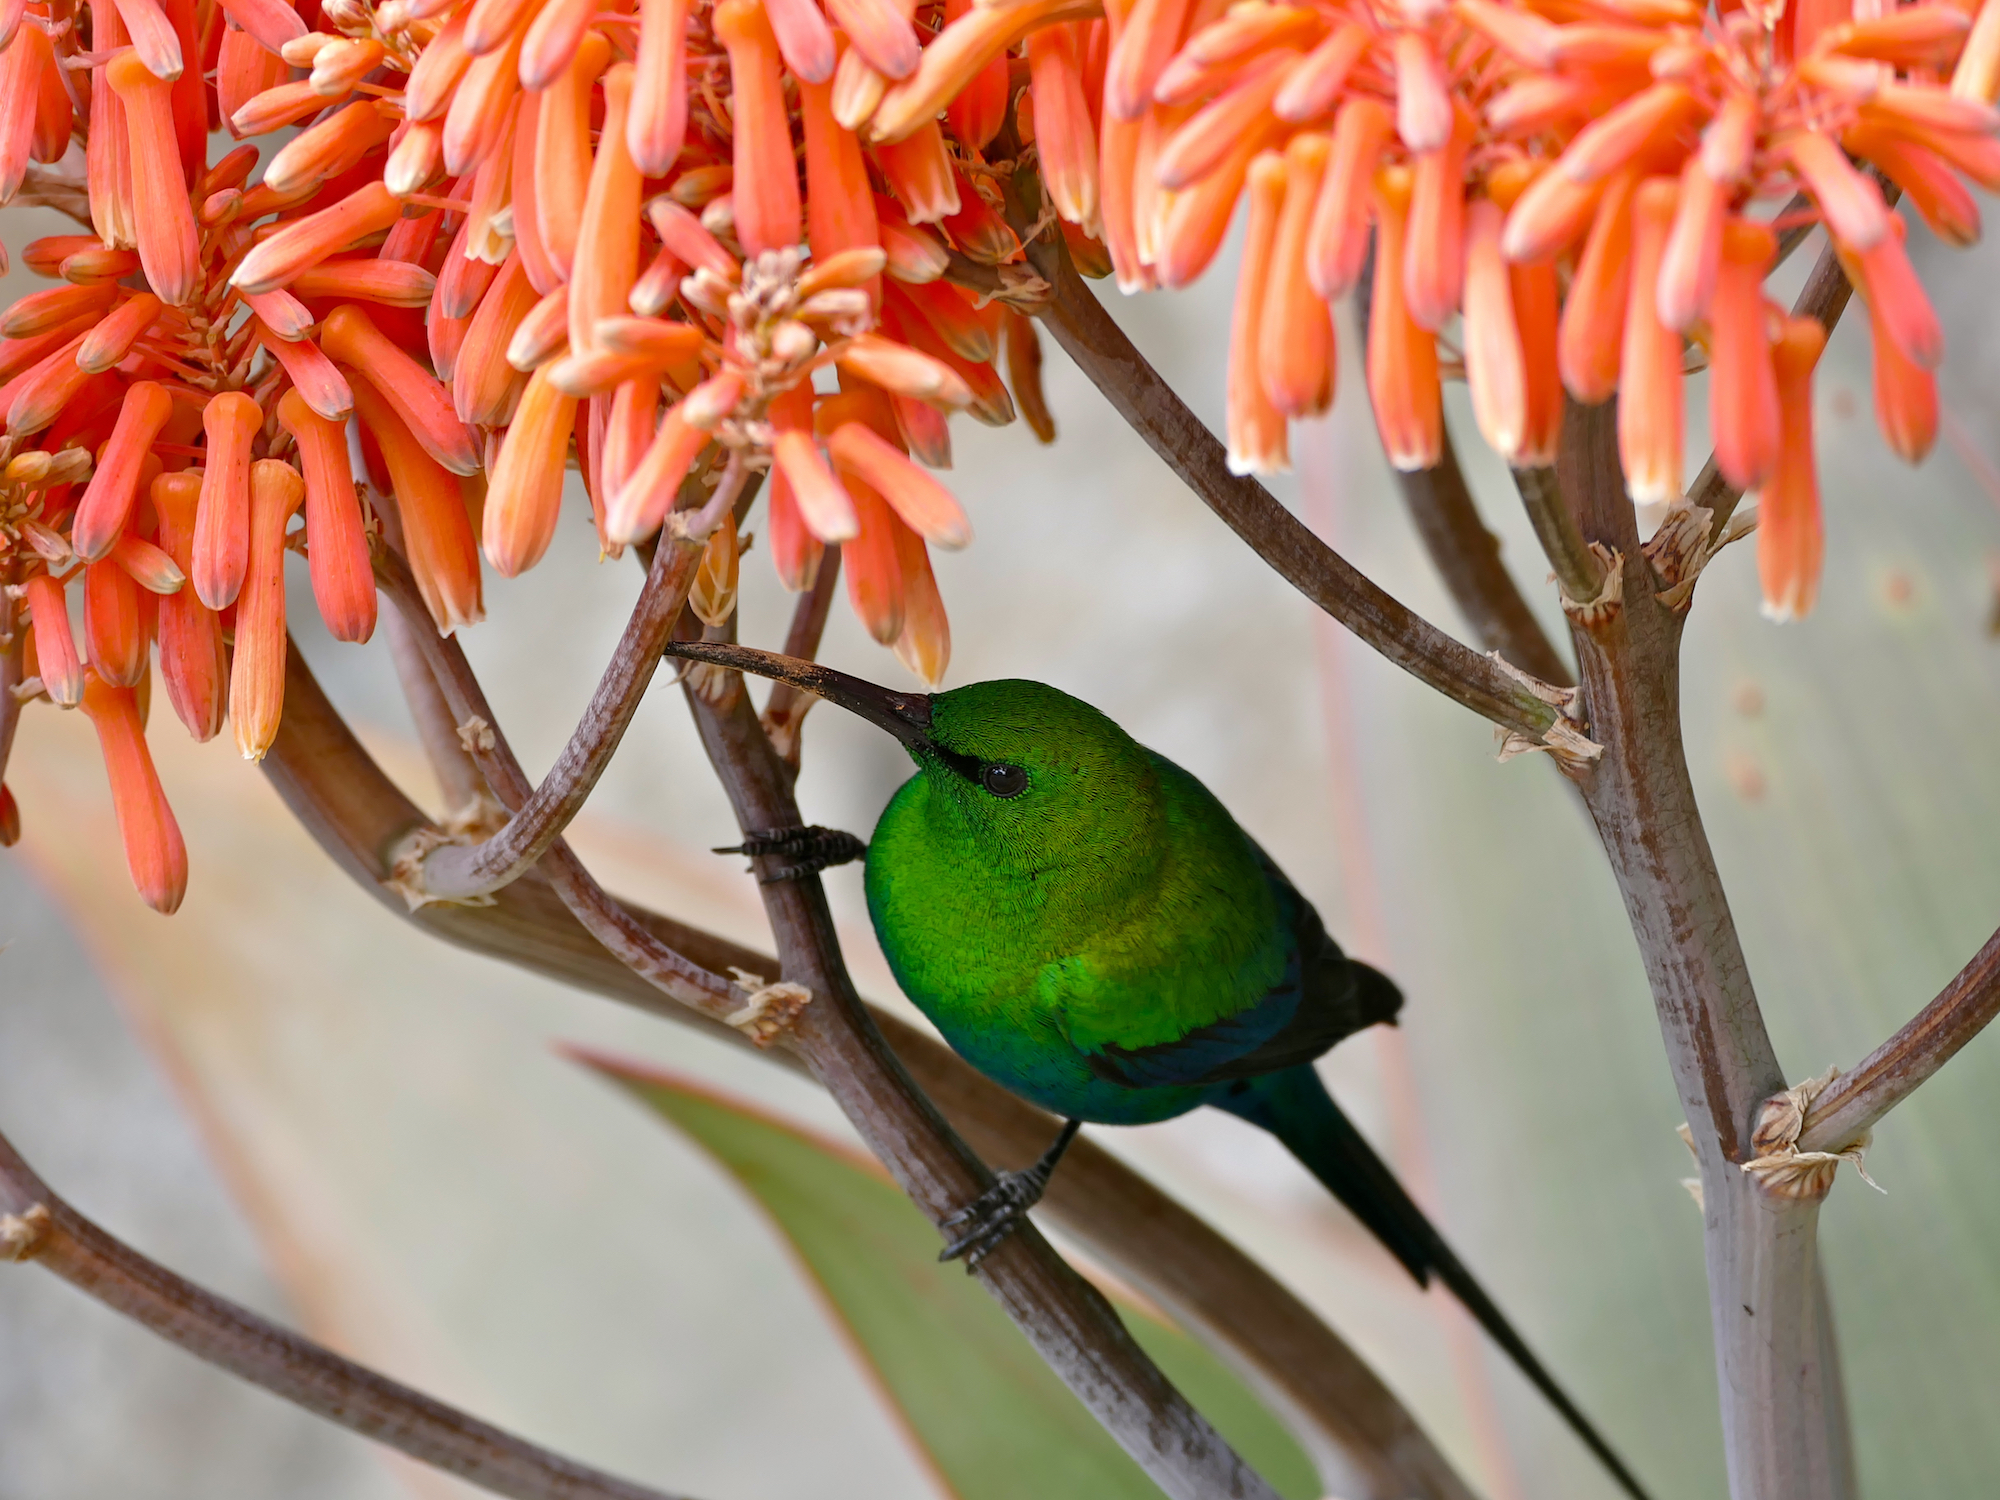 Bright green bird in a plant with orange flowers